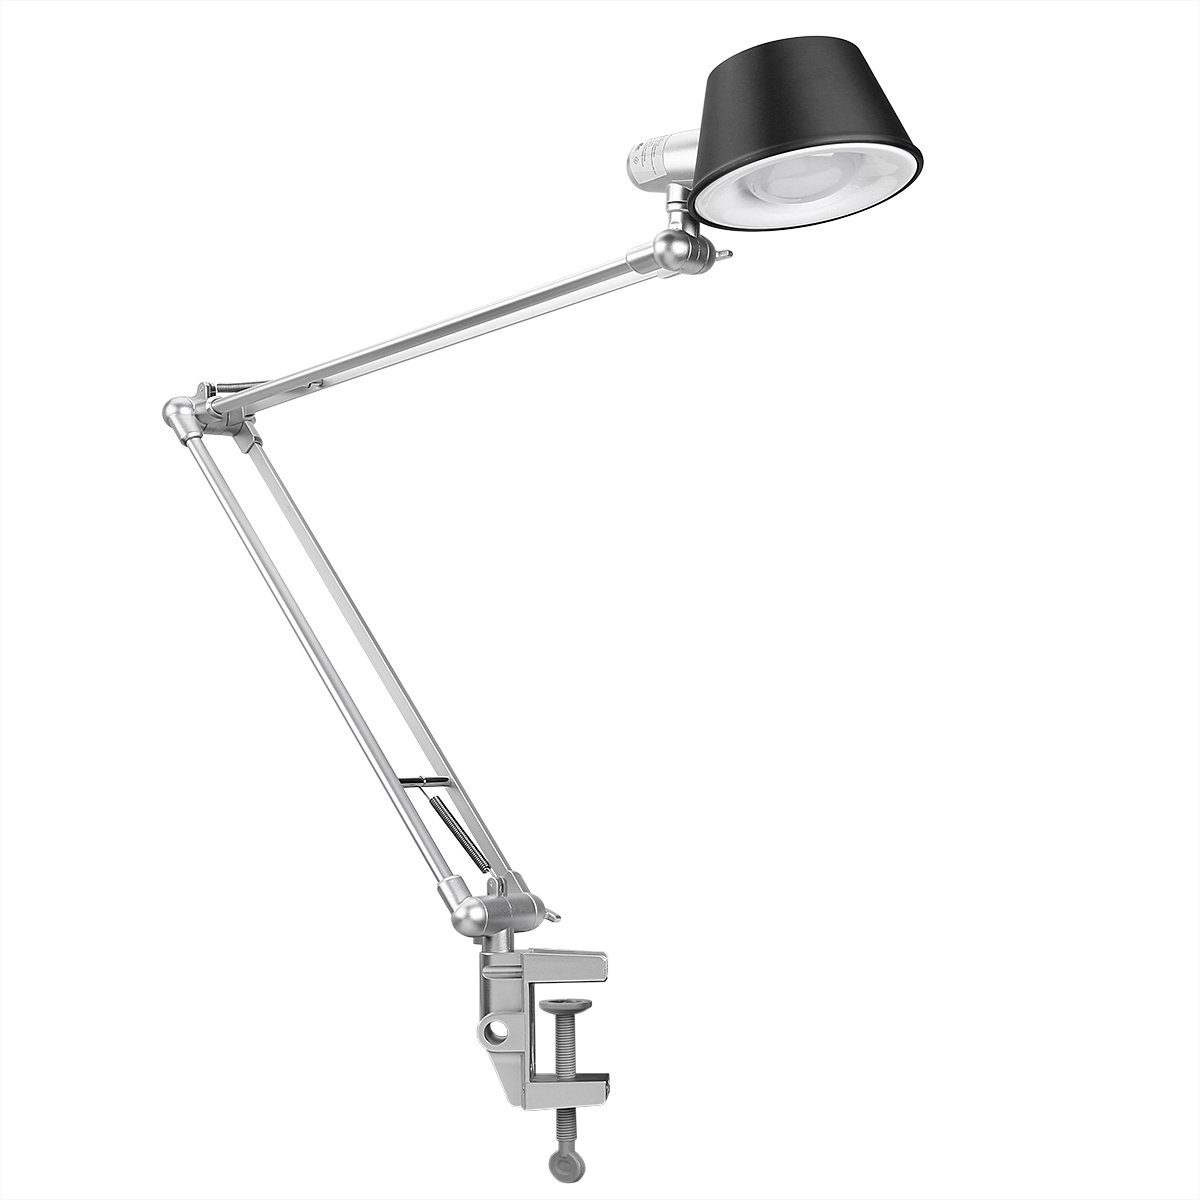 LE Swing Arm Desk Lamp, C-Clamp Table Lamp, Flexible Arm, Classic Architect Drawing Clamp-on Desk Lamp, Black Painted with Metal Clamp, UL Plug (Black - Metal Arm Joint) Lighting EVER